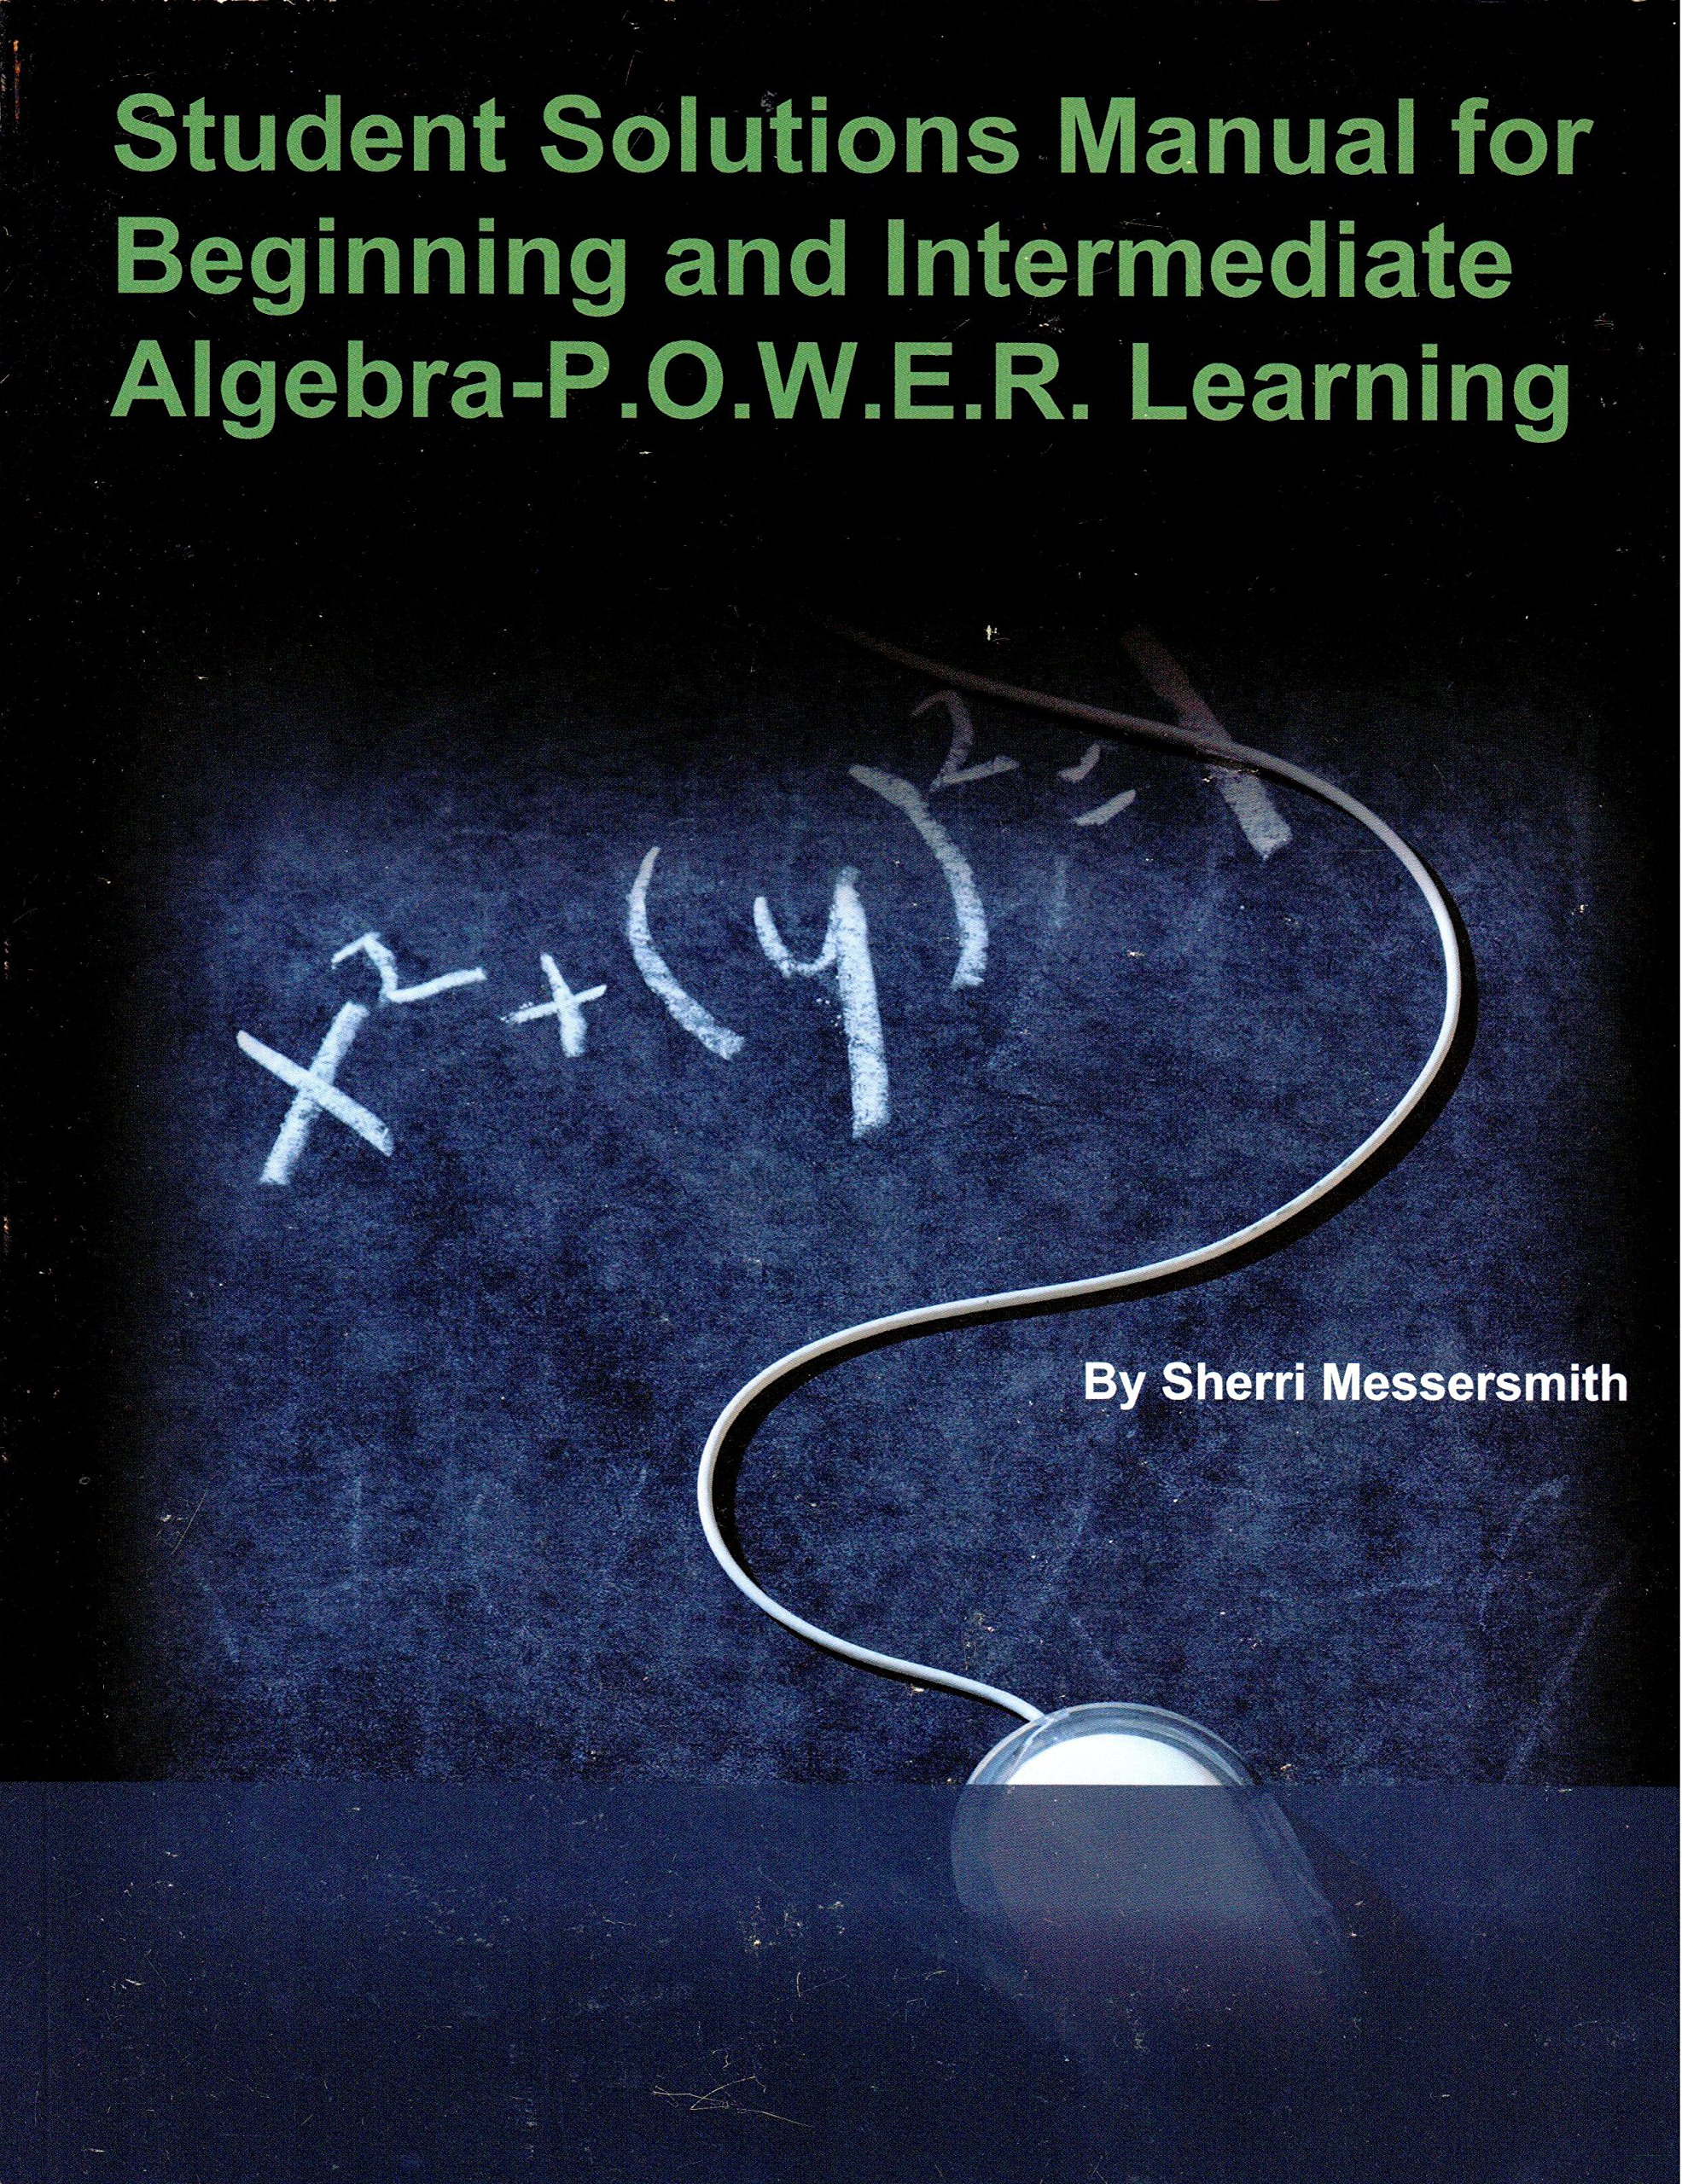 Student Solutions Manual to Accompany Beginning and Intermediate Algebra  with POWER Learning: Sherri Messersmith: 9781259306389: Amazon.com: Books